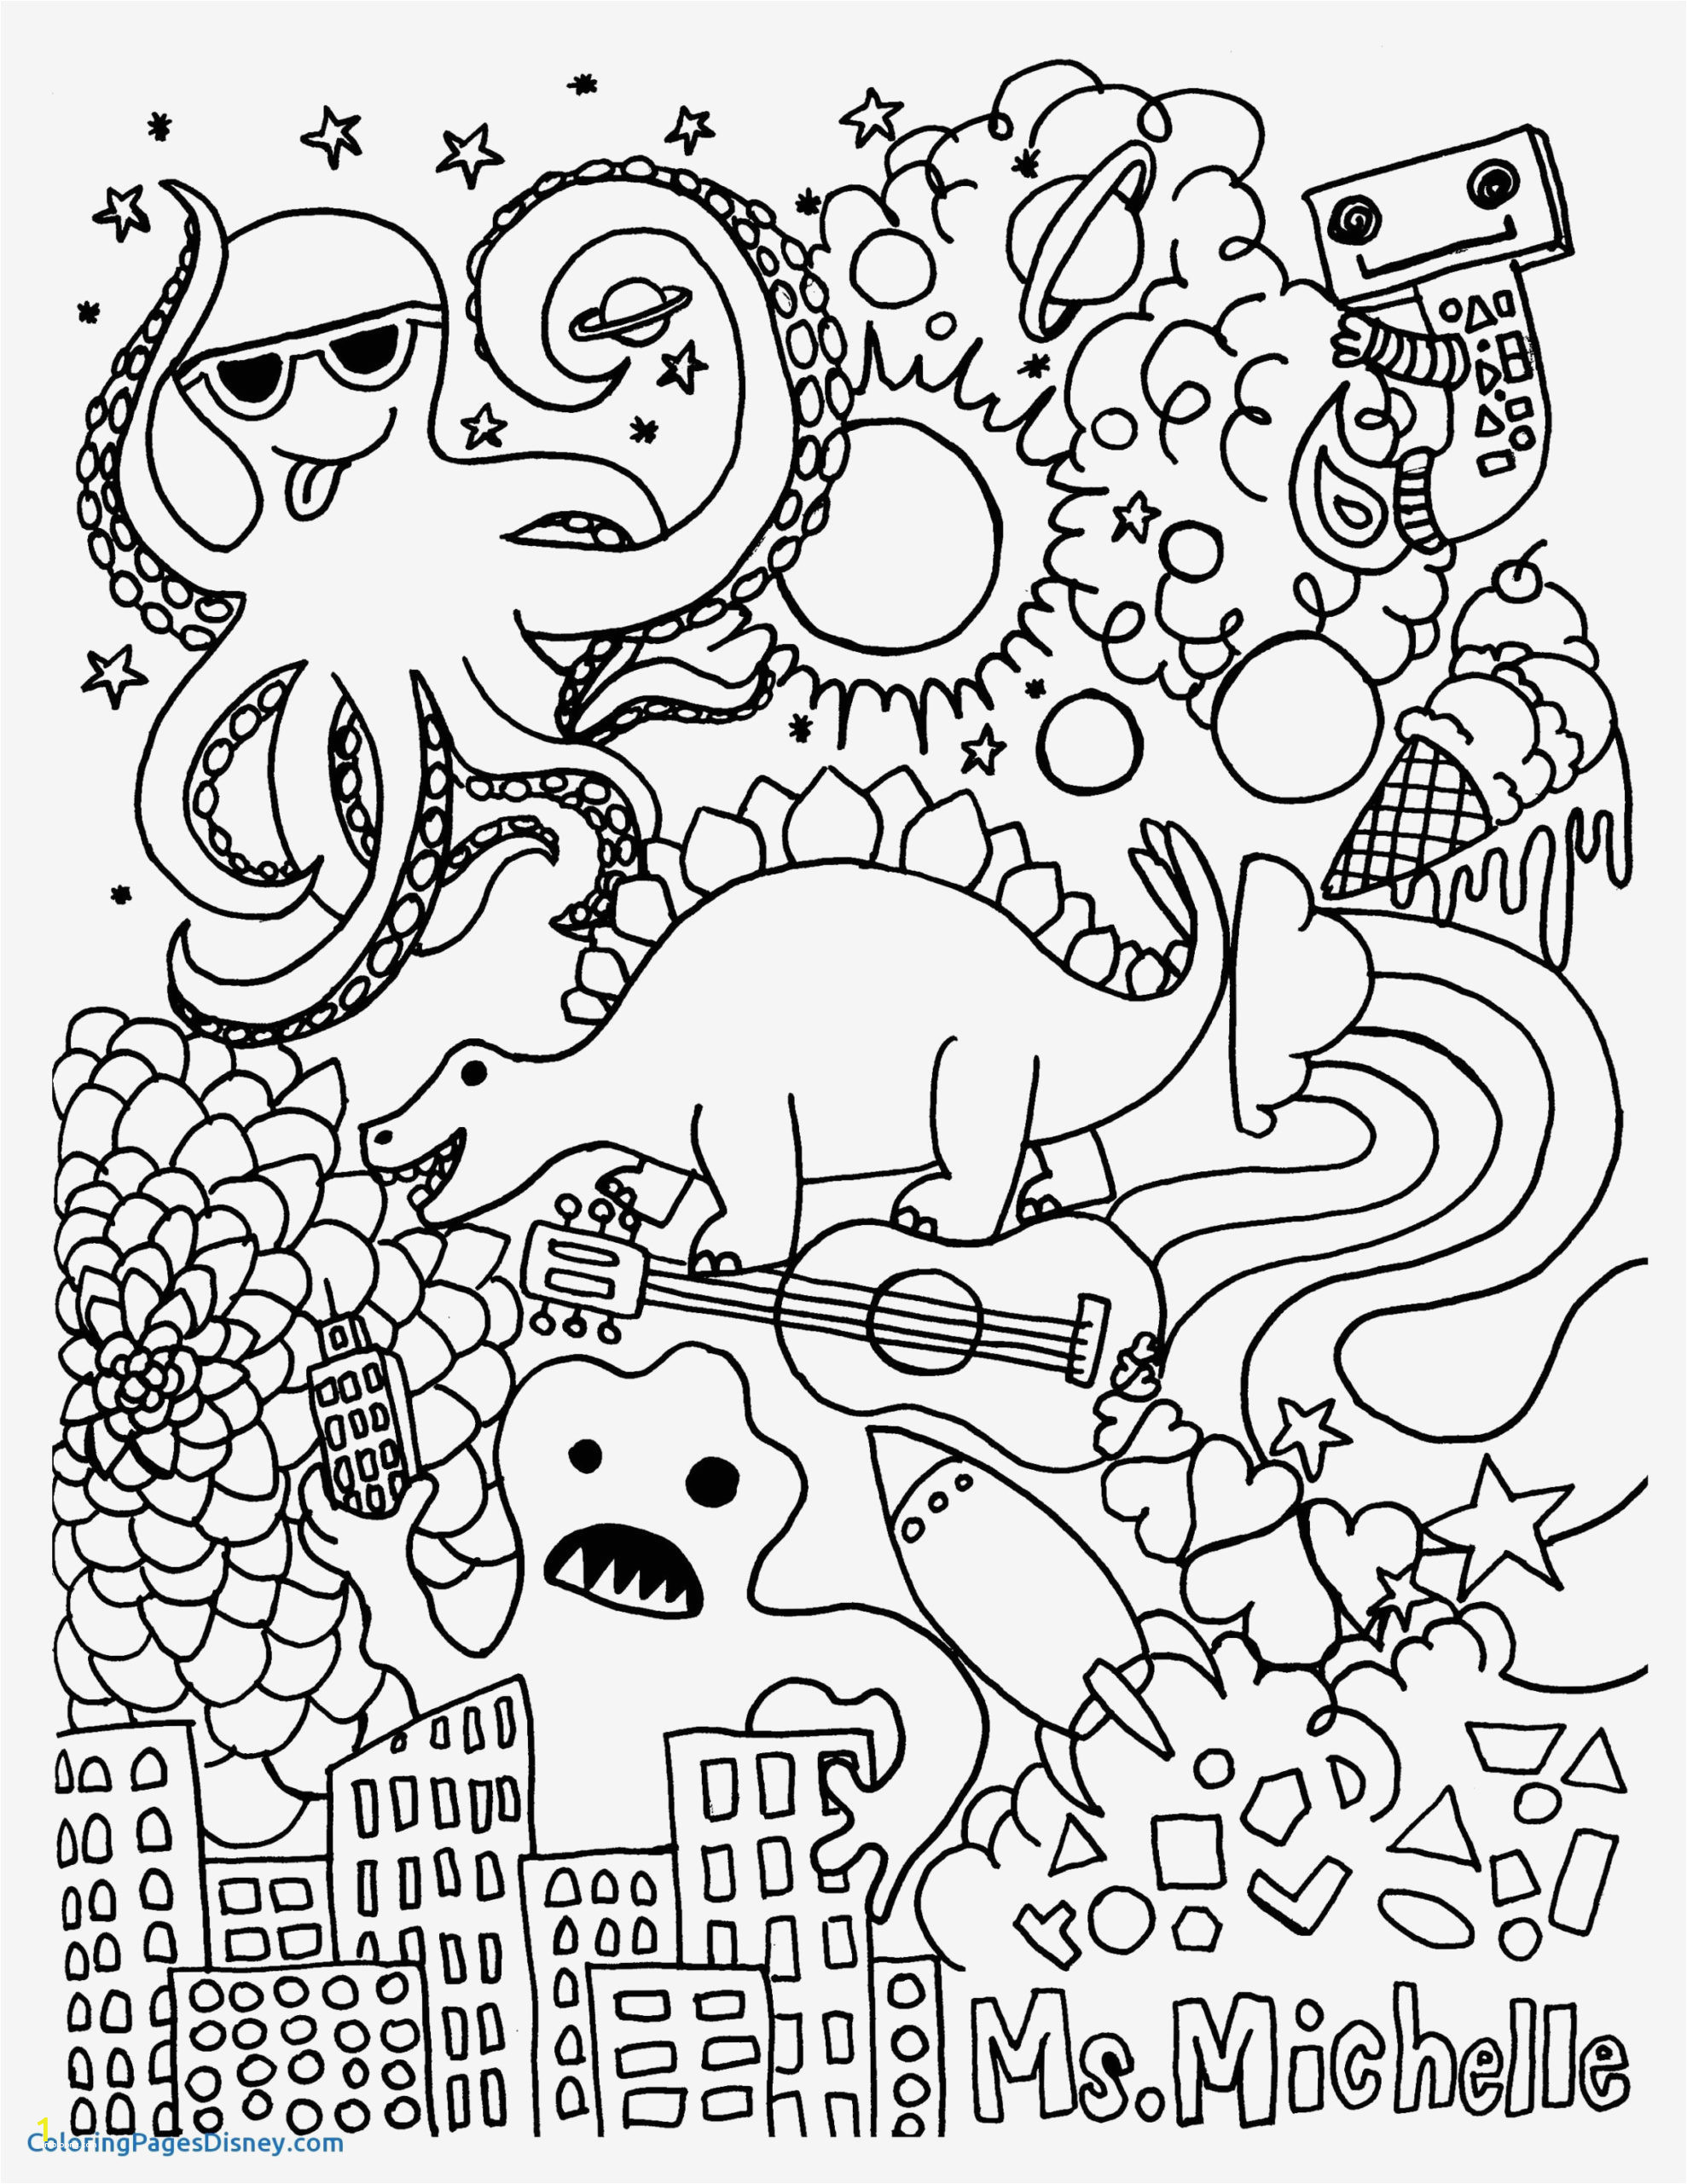 starbucks unicorn coloring pages how to make unicorn frappucino starbucks coloring pages unicorn coloring starbucks pages